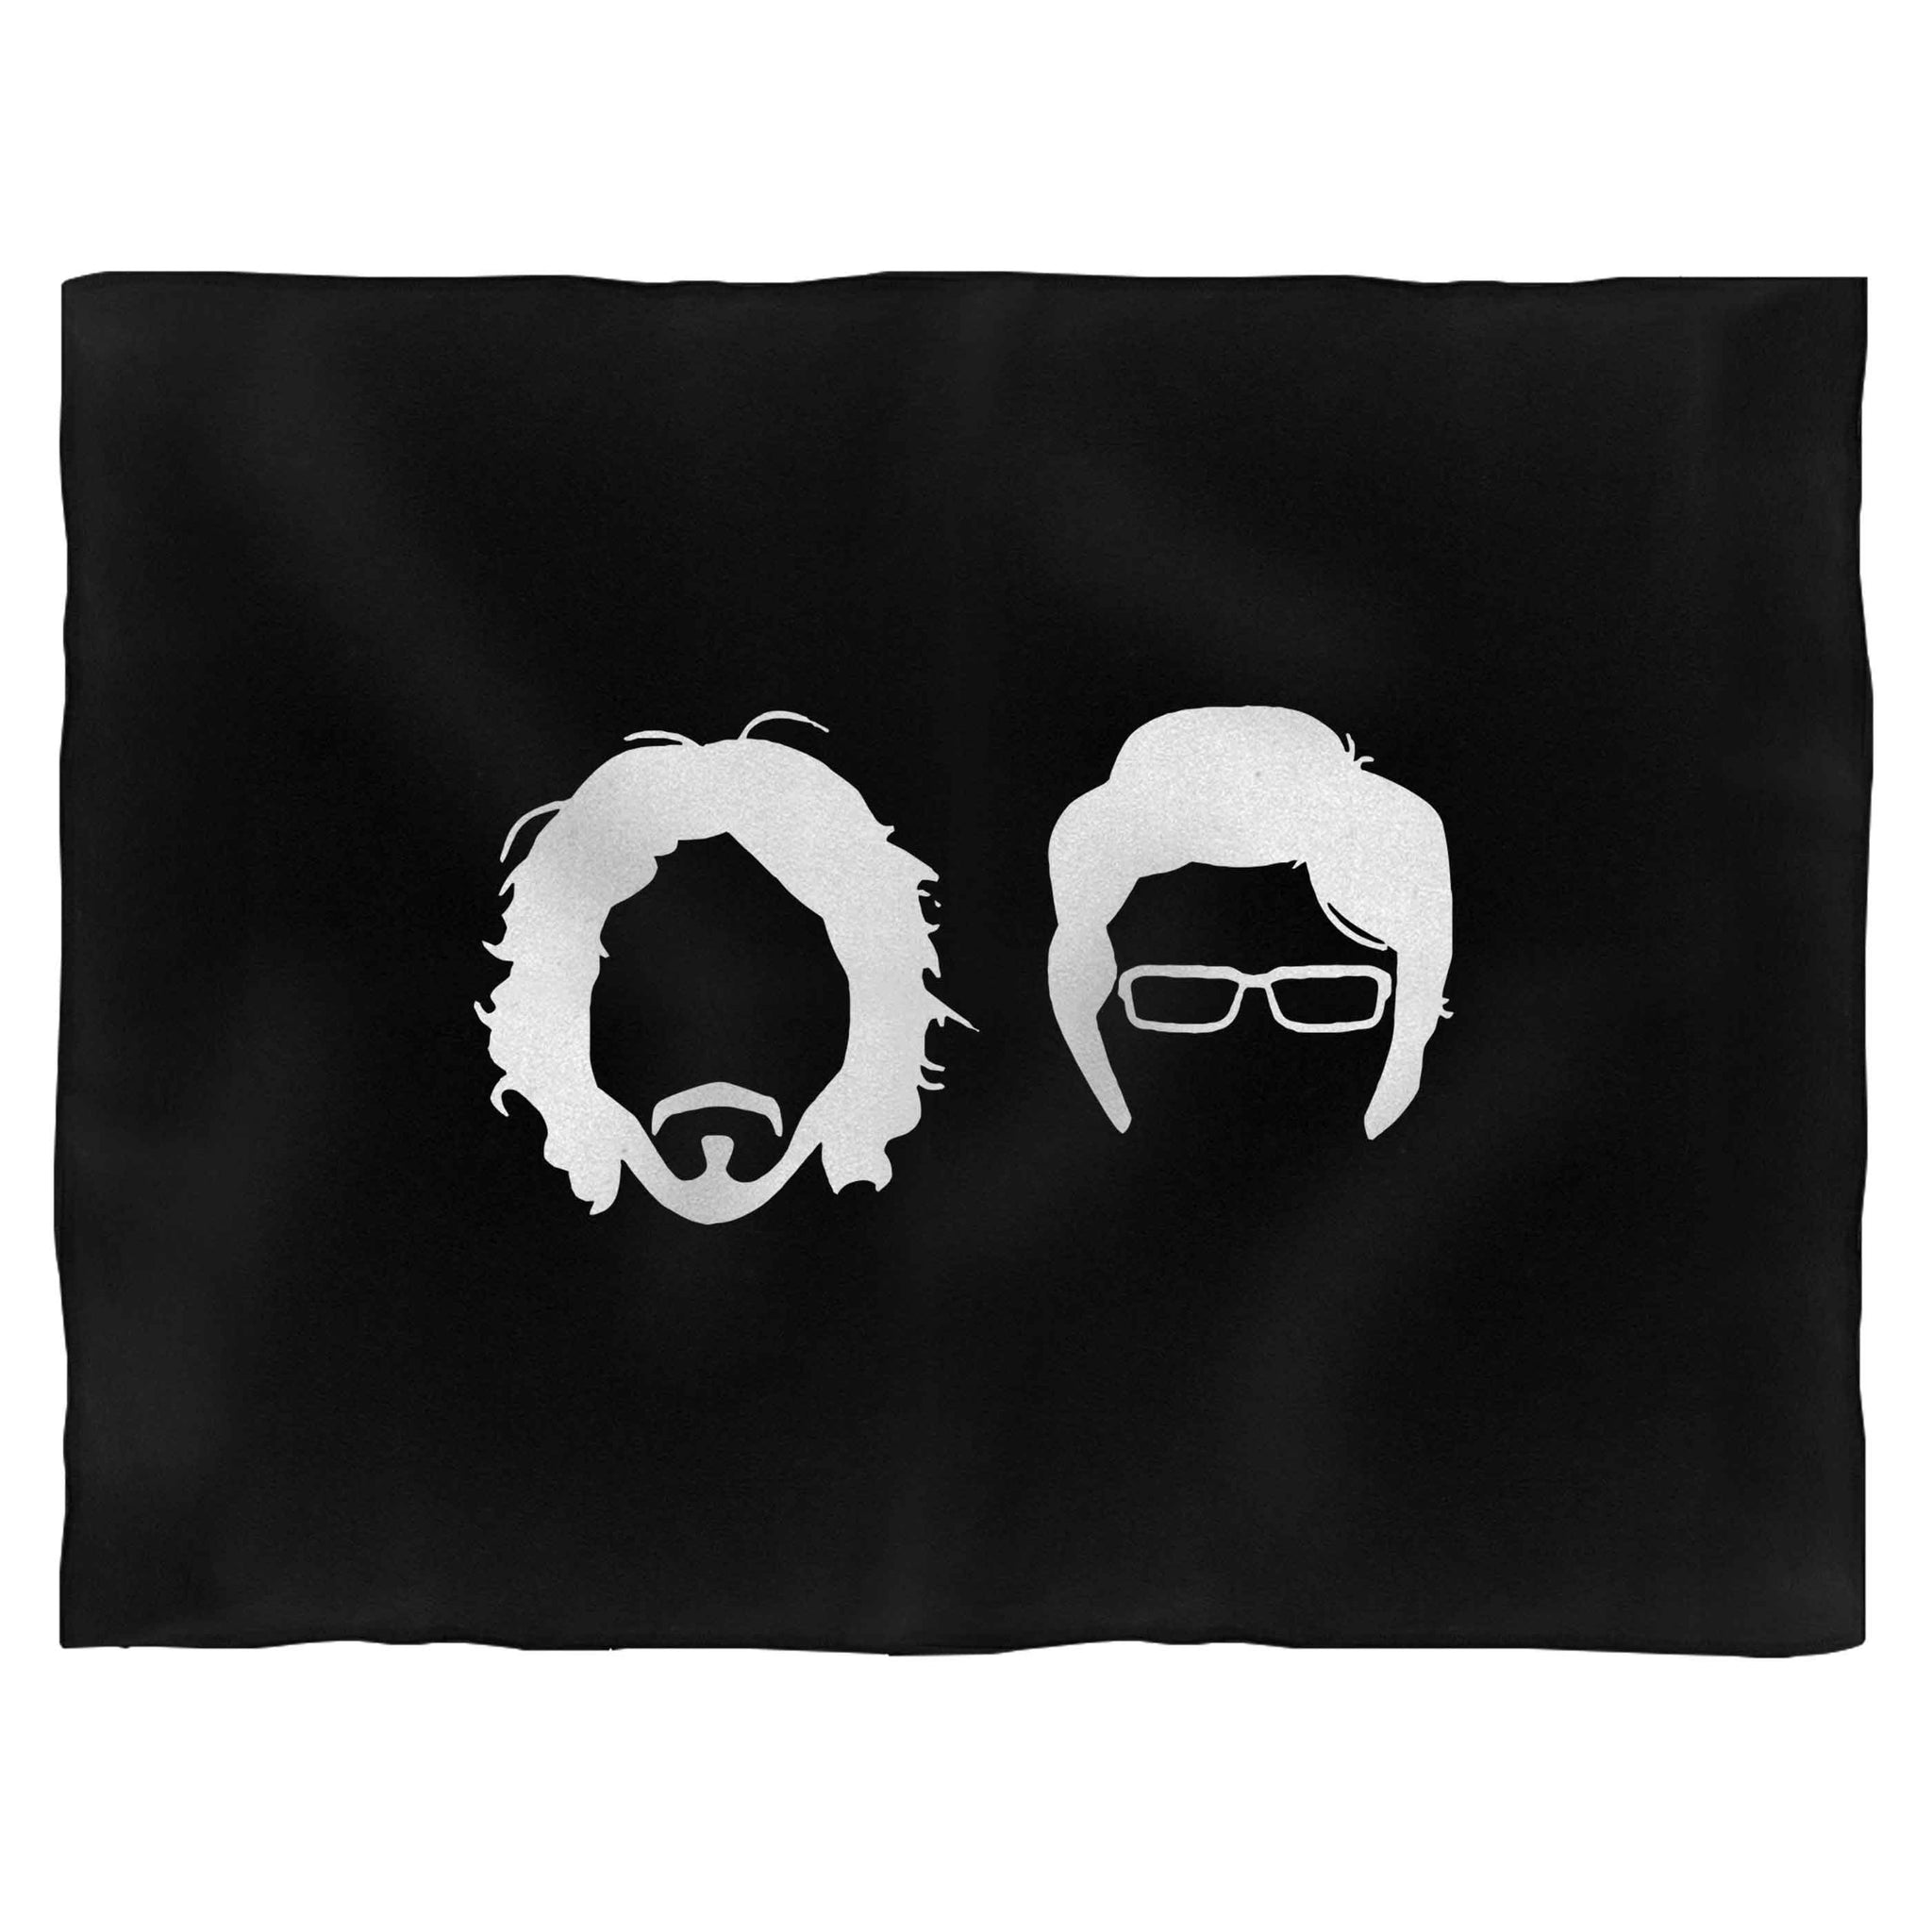 Flight Of The Conchords Jermaine And Bret Comedy Tv Show Blanket